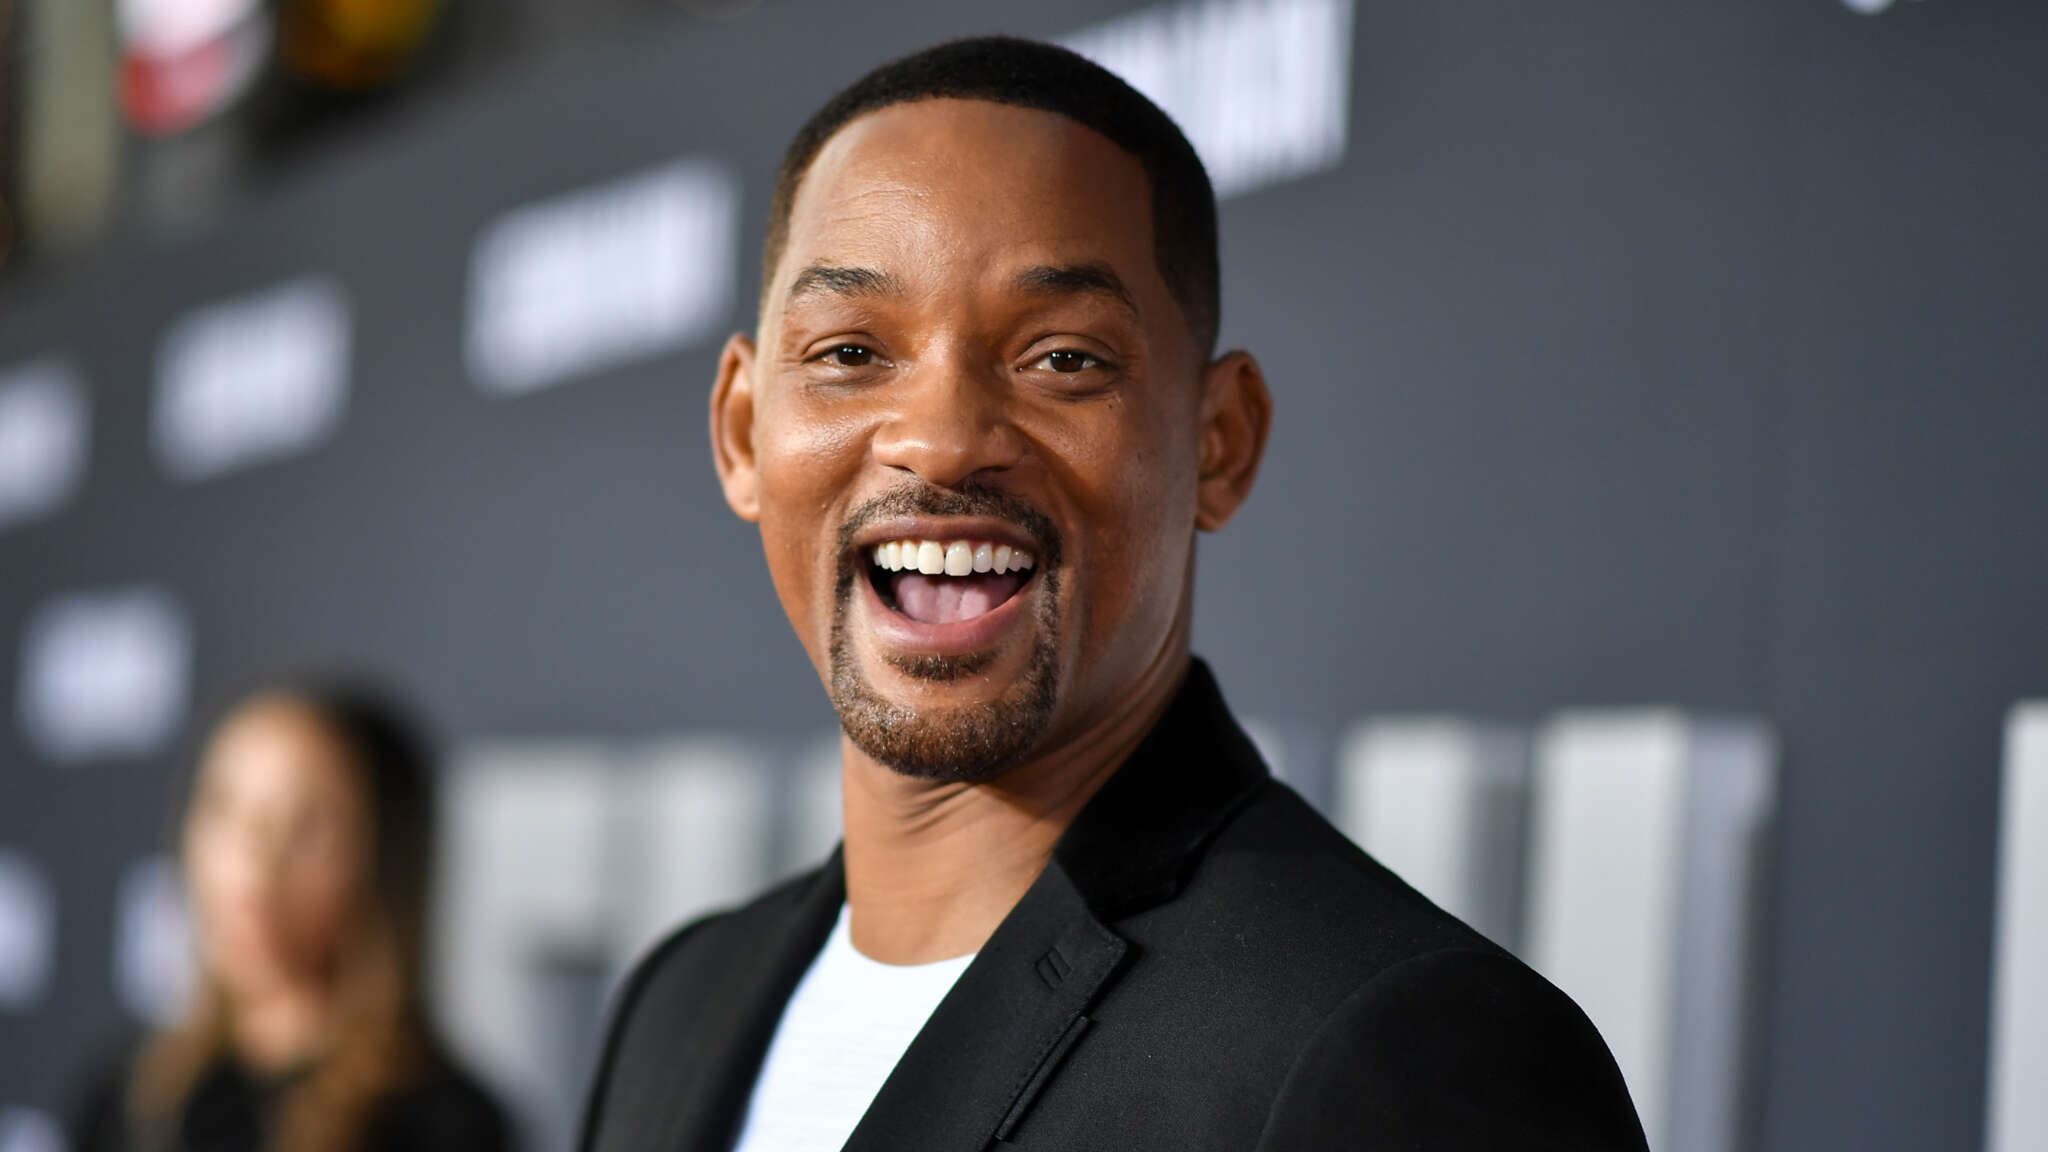 will-smith-reveals-he-might-run-for-office-at-some-point